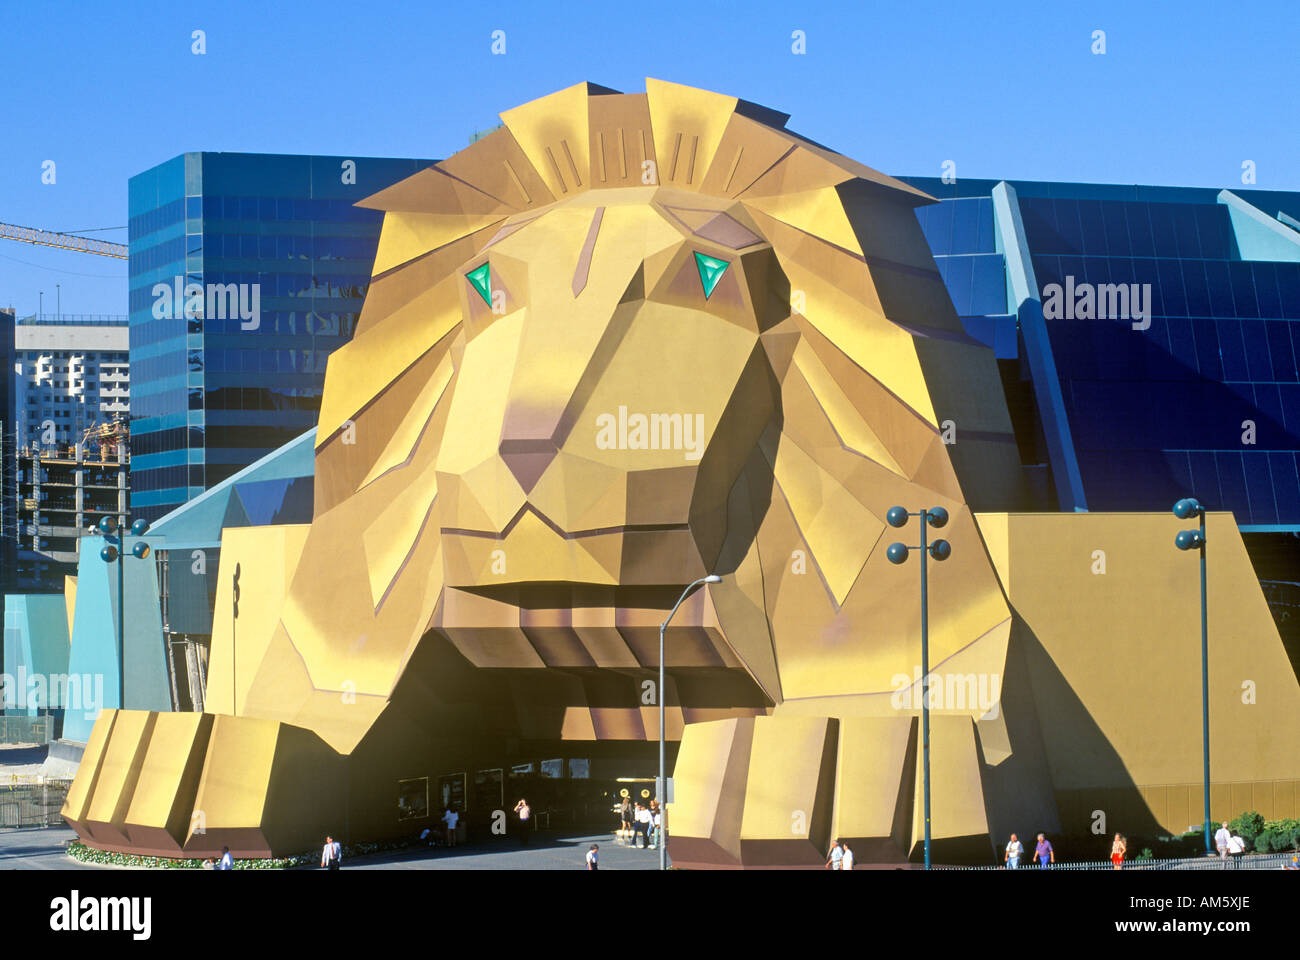 Replica Lion Entrance Mgm Grand High Resolution Stock Photography And Images Alamy